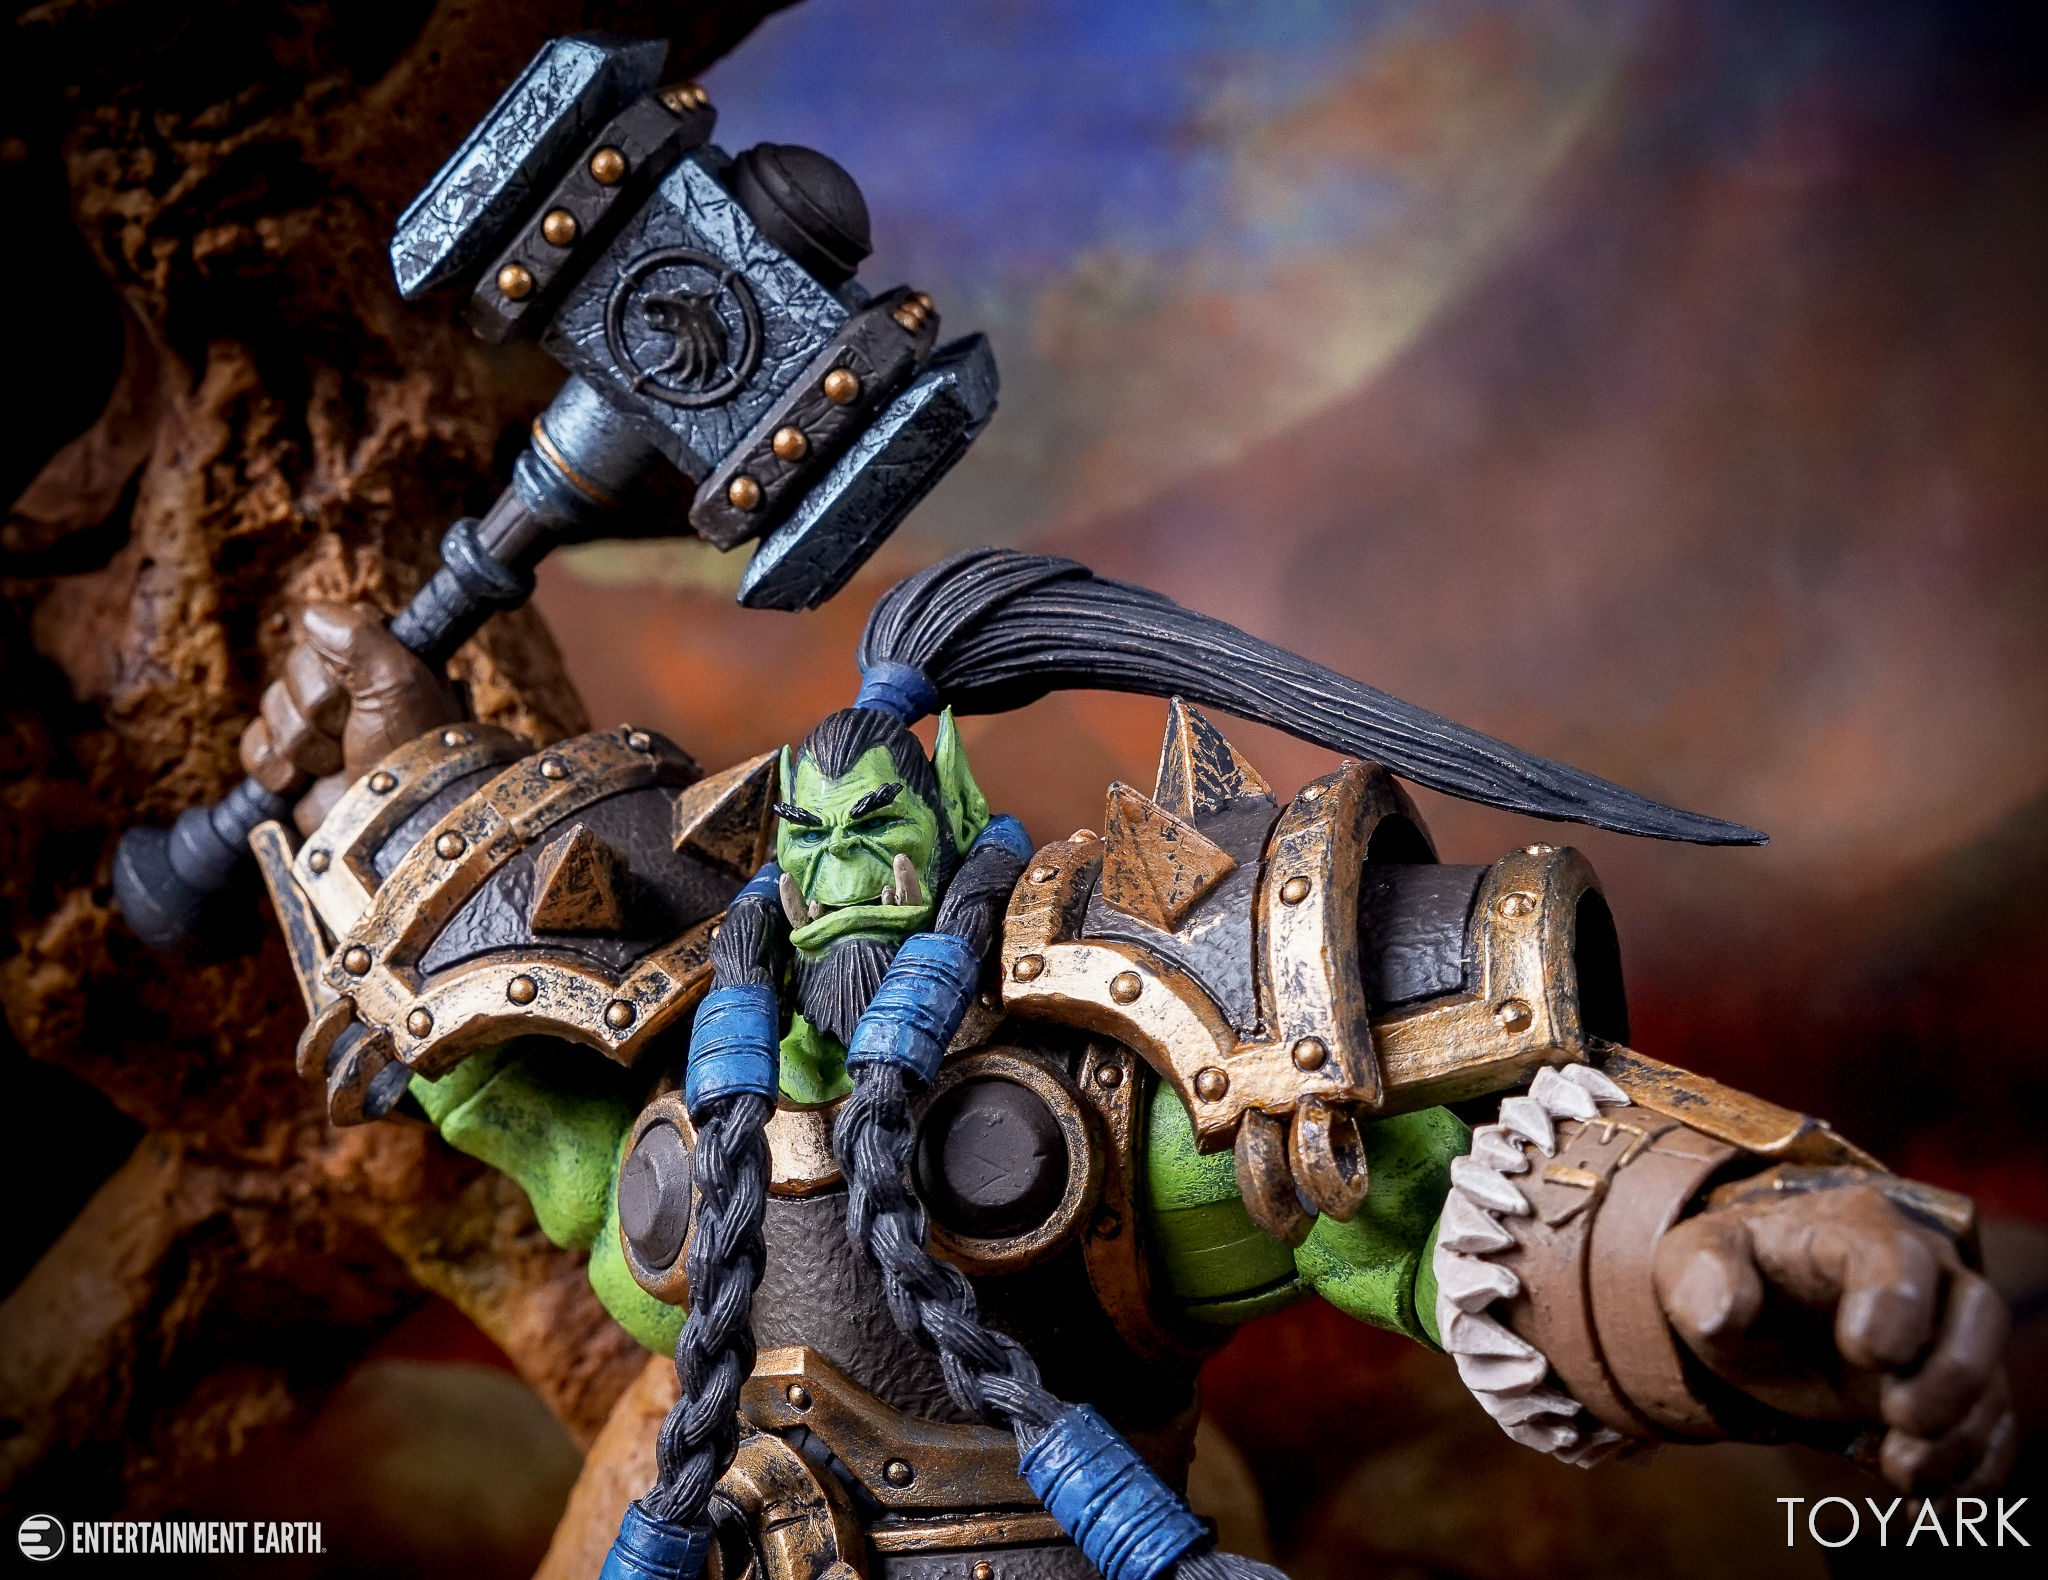 http://news.toyark.com/wp-content/uploads/sites/4/2017/08/NECA-Heroes-of-the-Storm-Thrall-032.jpg